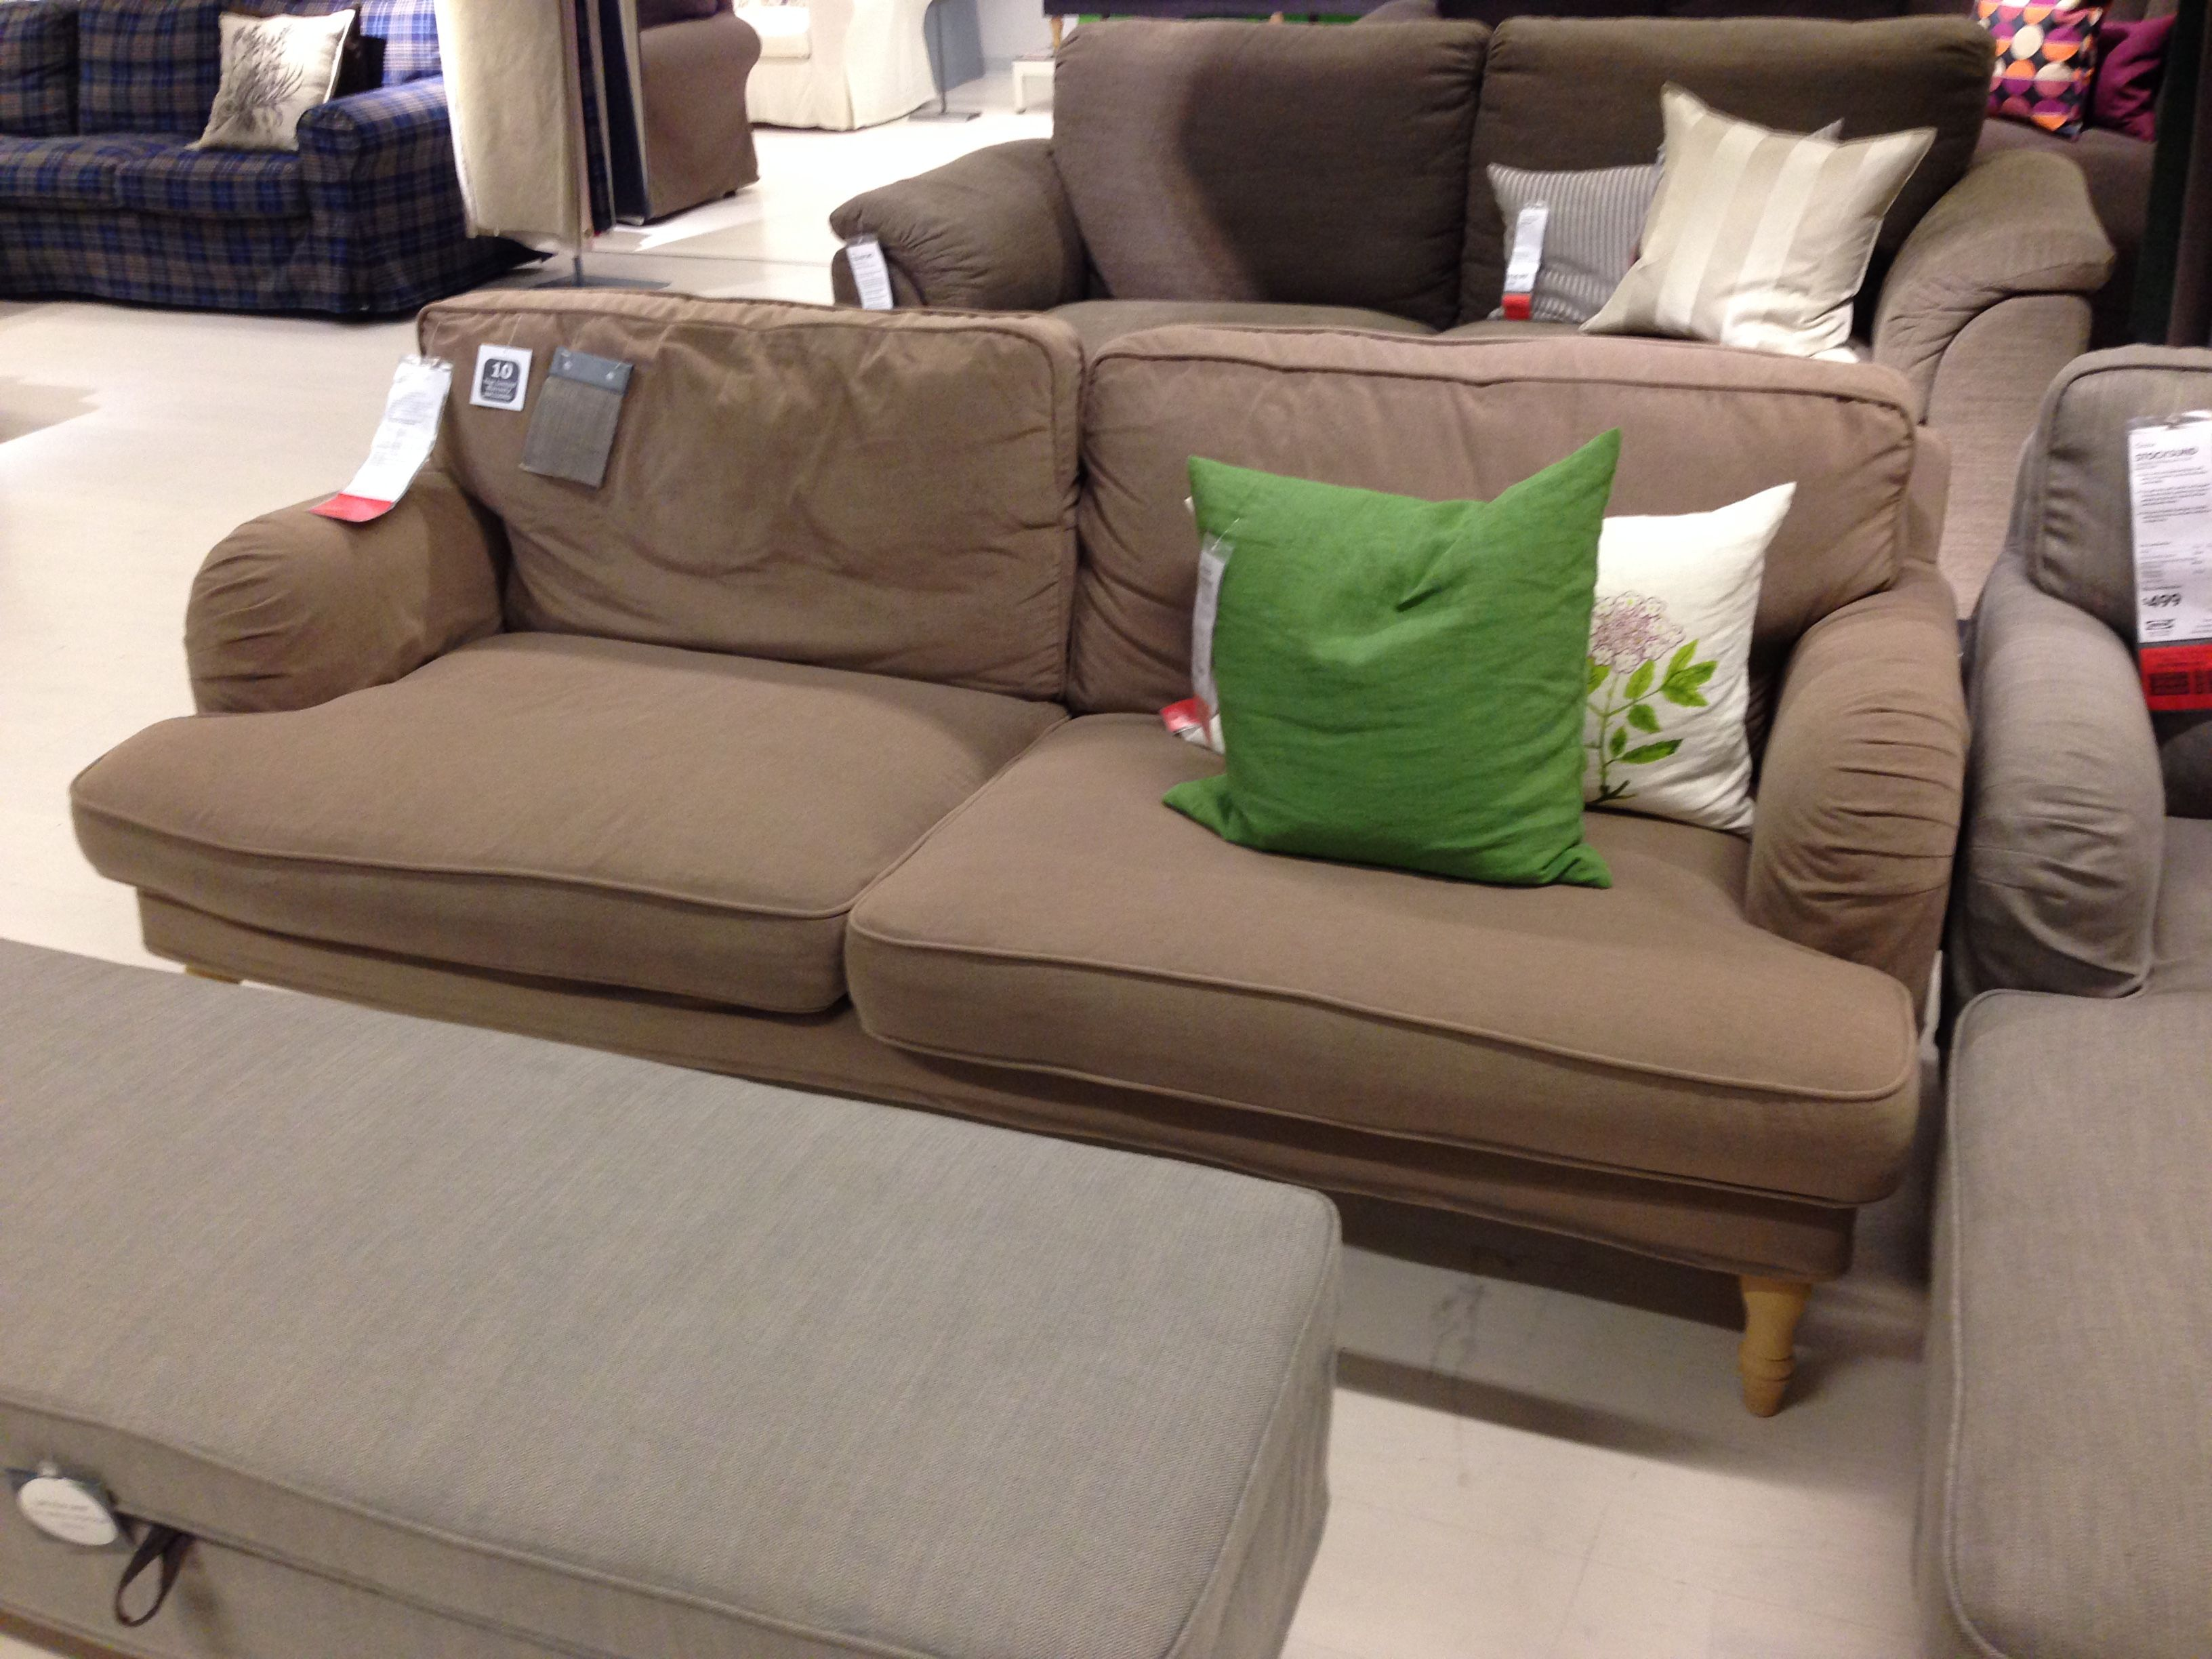 bed prev couches expand adagio murphysofa luxury sofa couch queen sectional product comfort wall